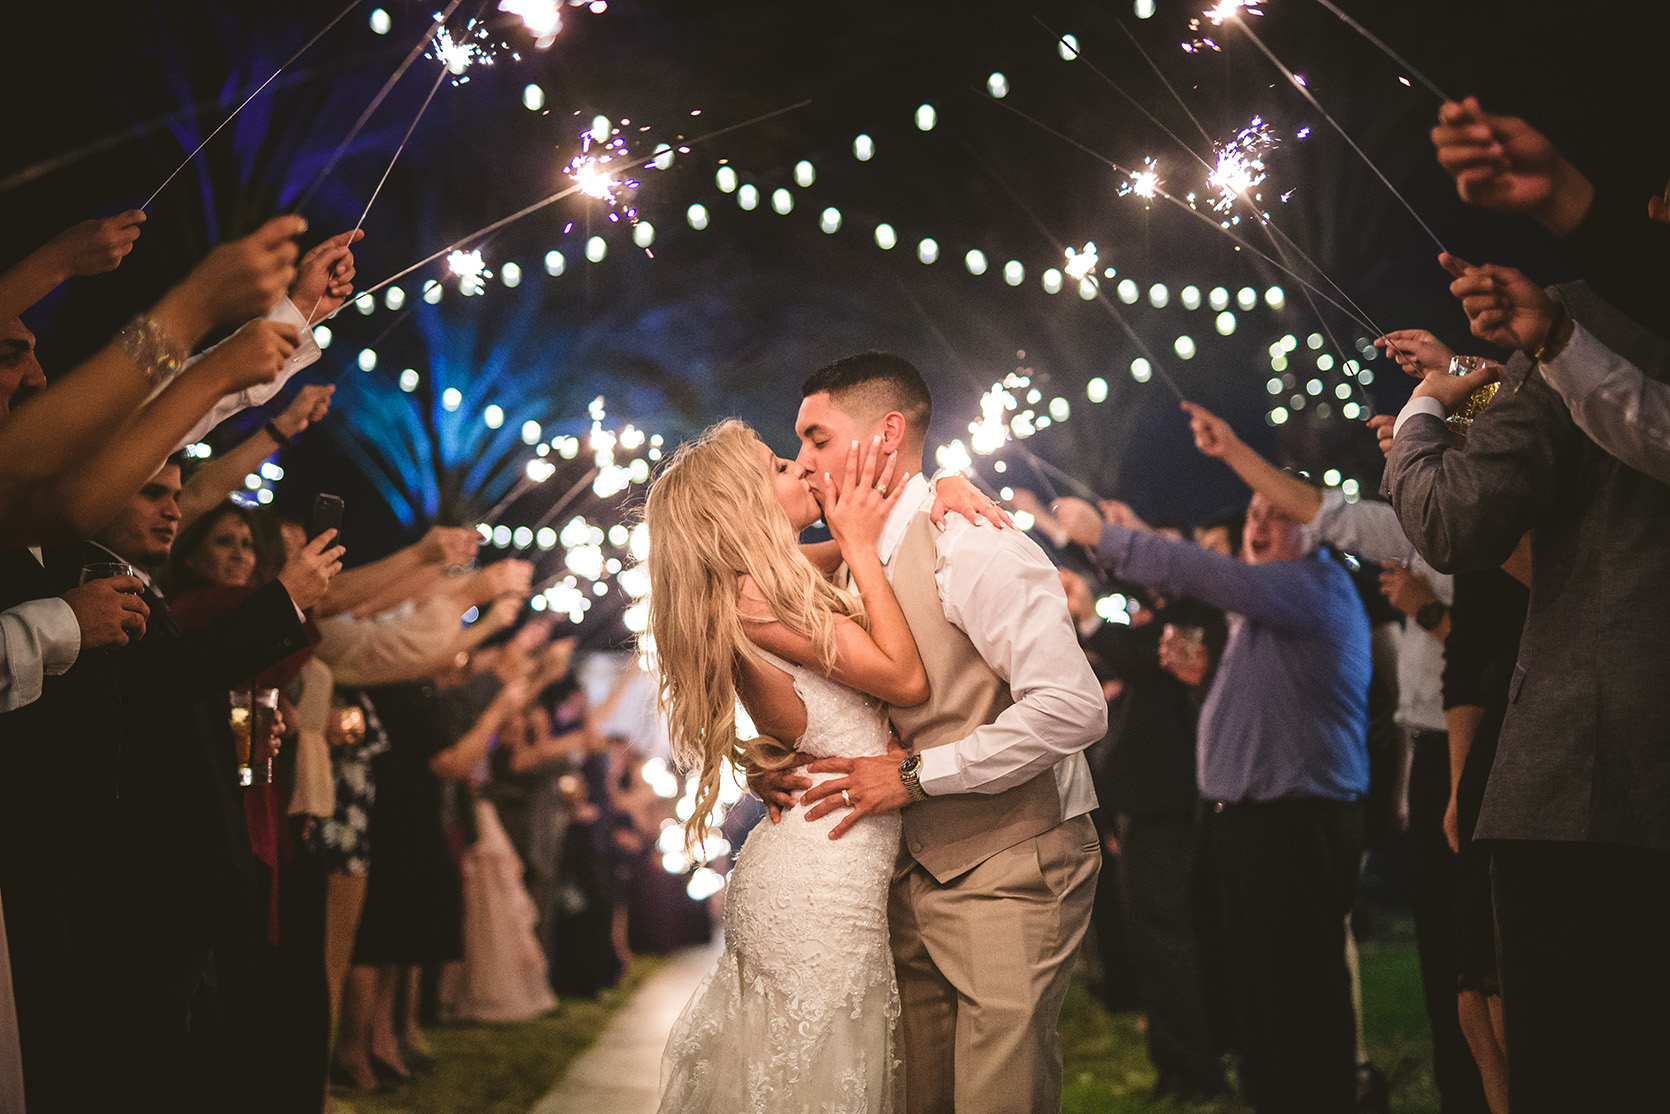 houston wedding, couple exit, sparklers, string lights